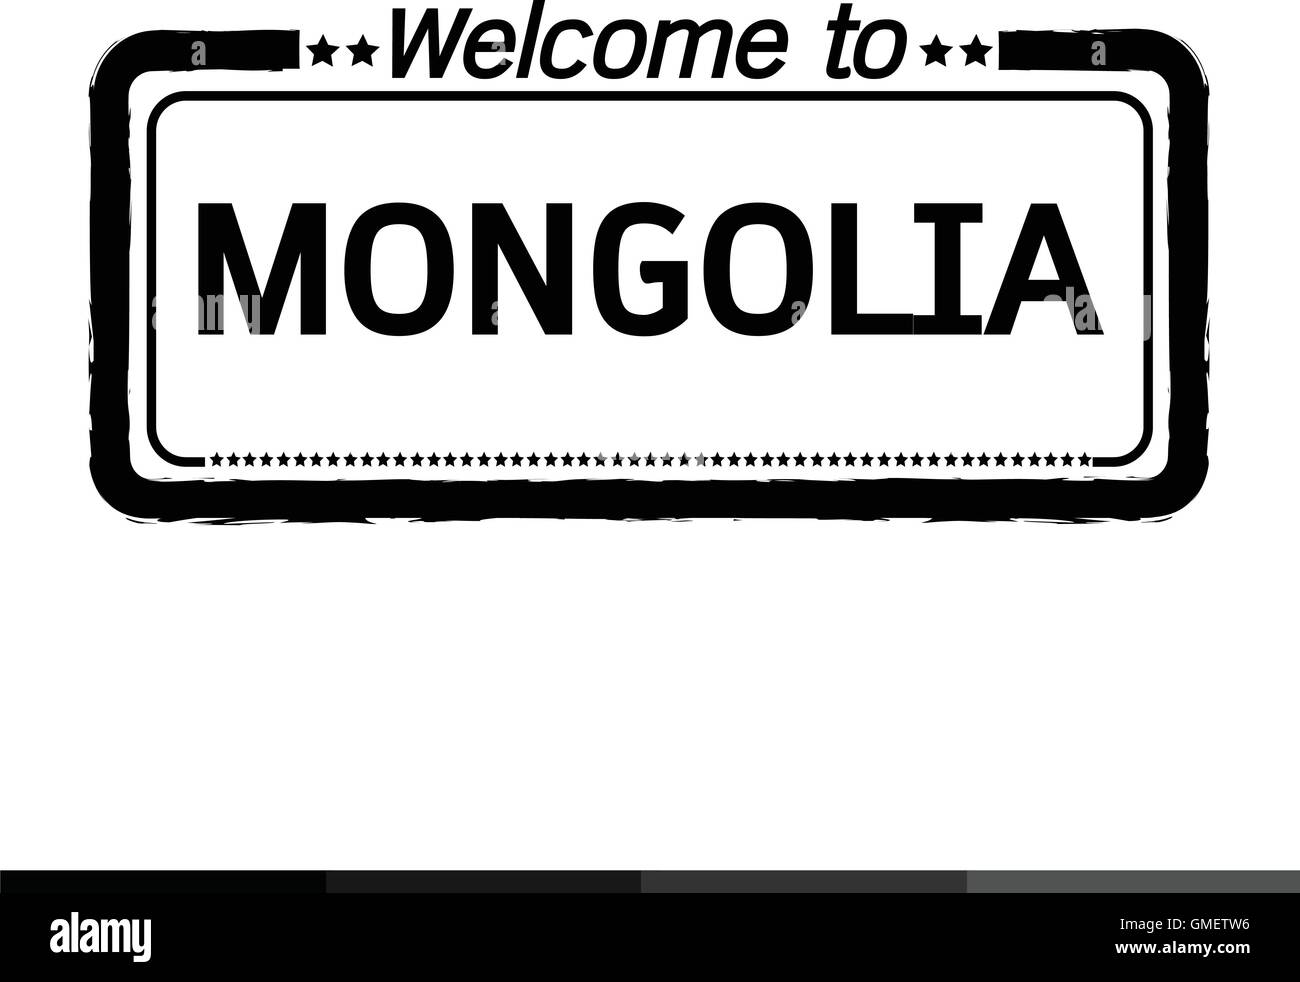 Welcome to MONGOLIA illustration design - Stock Vector